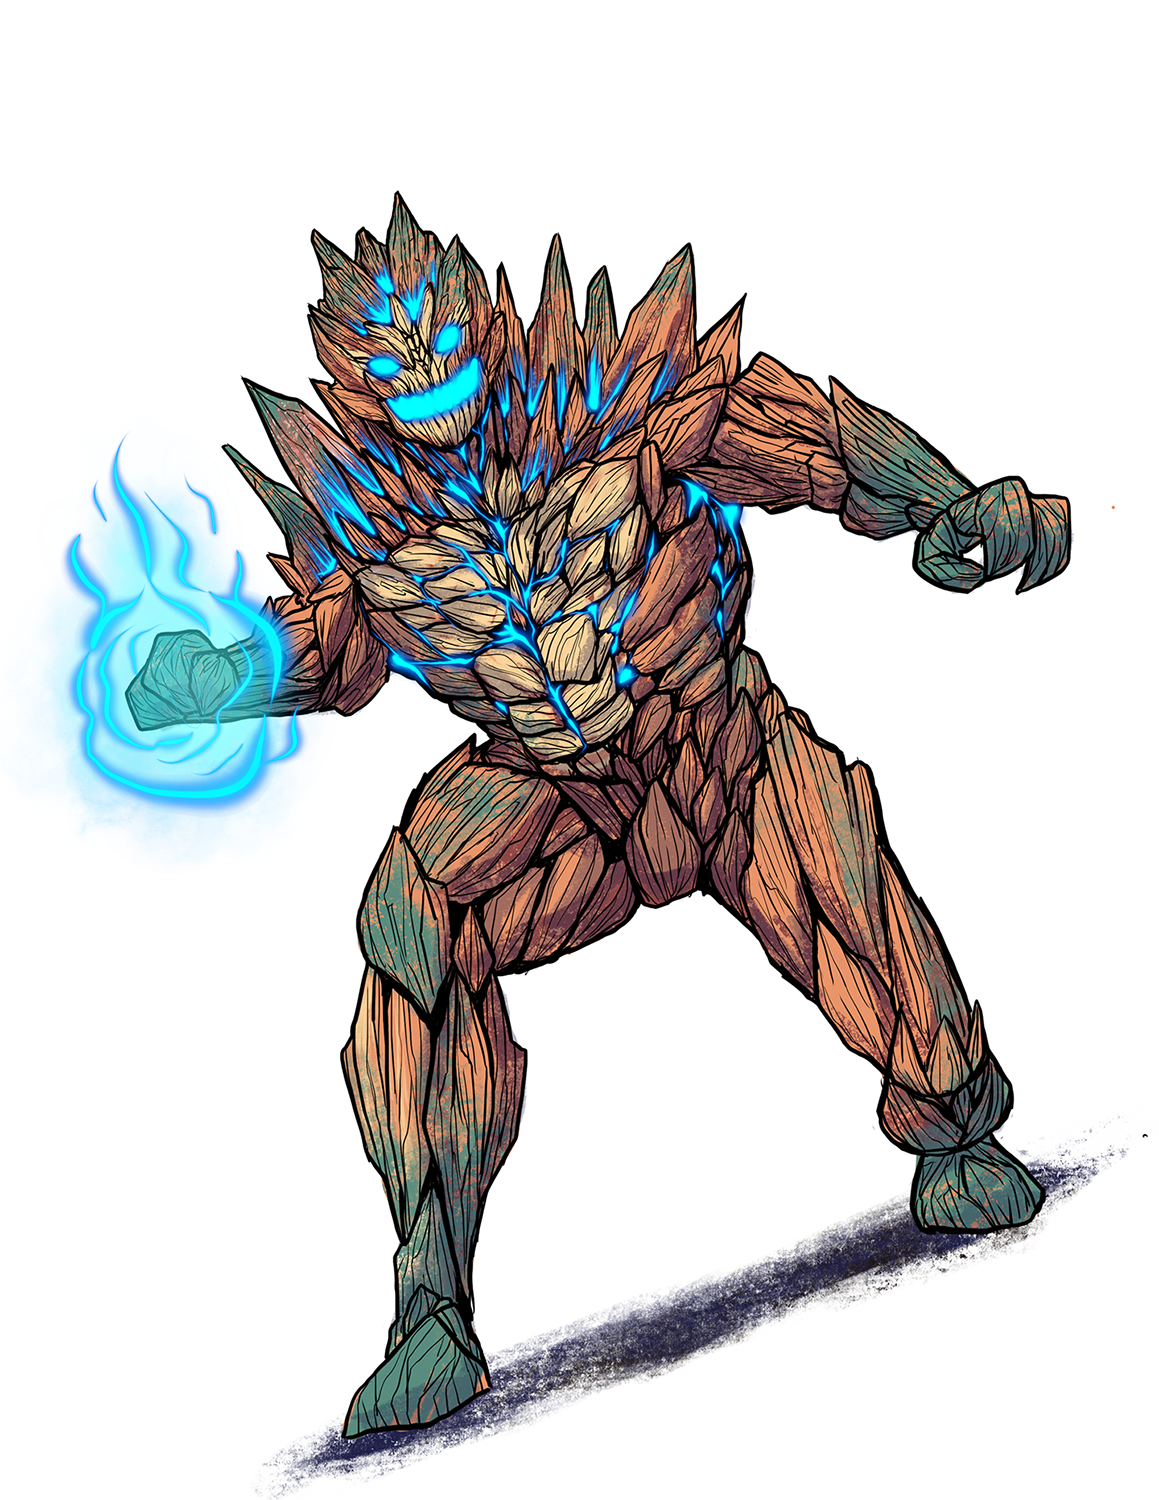 Vulcan, one of the alien heroes from the Titan City Universe